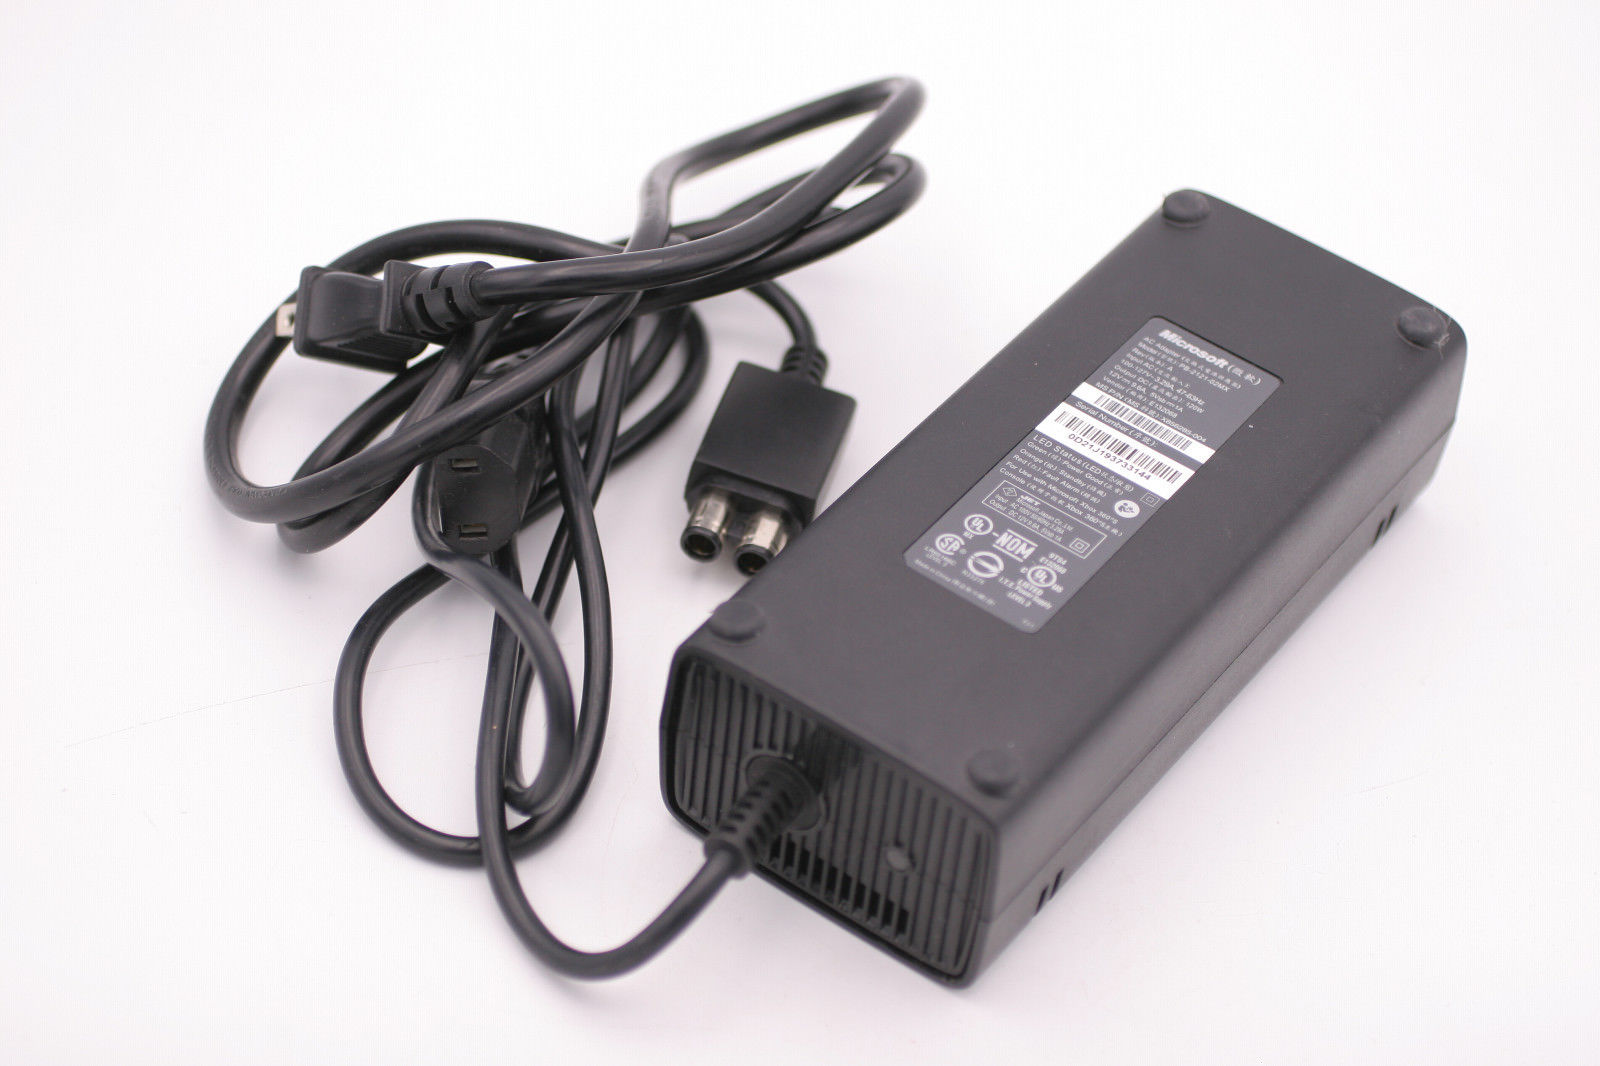 Microsoft PB-2121-02MX PB-2121-03MX AC Adapter Power Cord Supply Charger Cable Wire Xbox 360 Slim Genuine Original